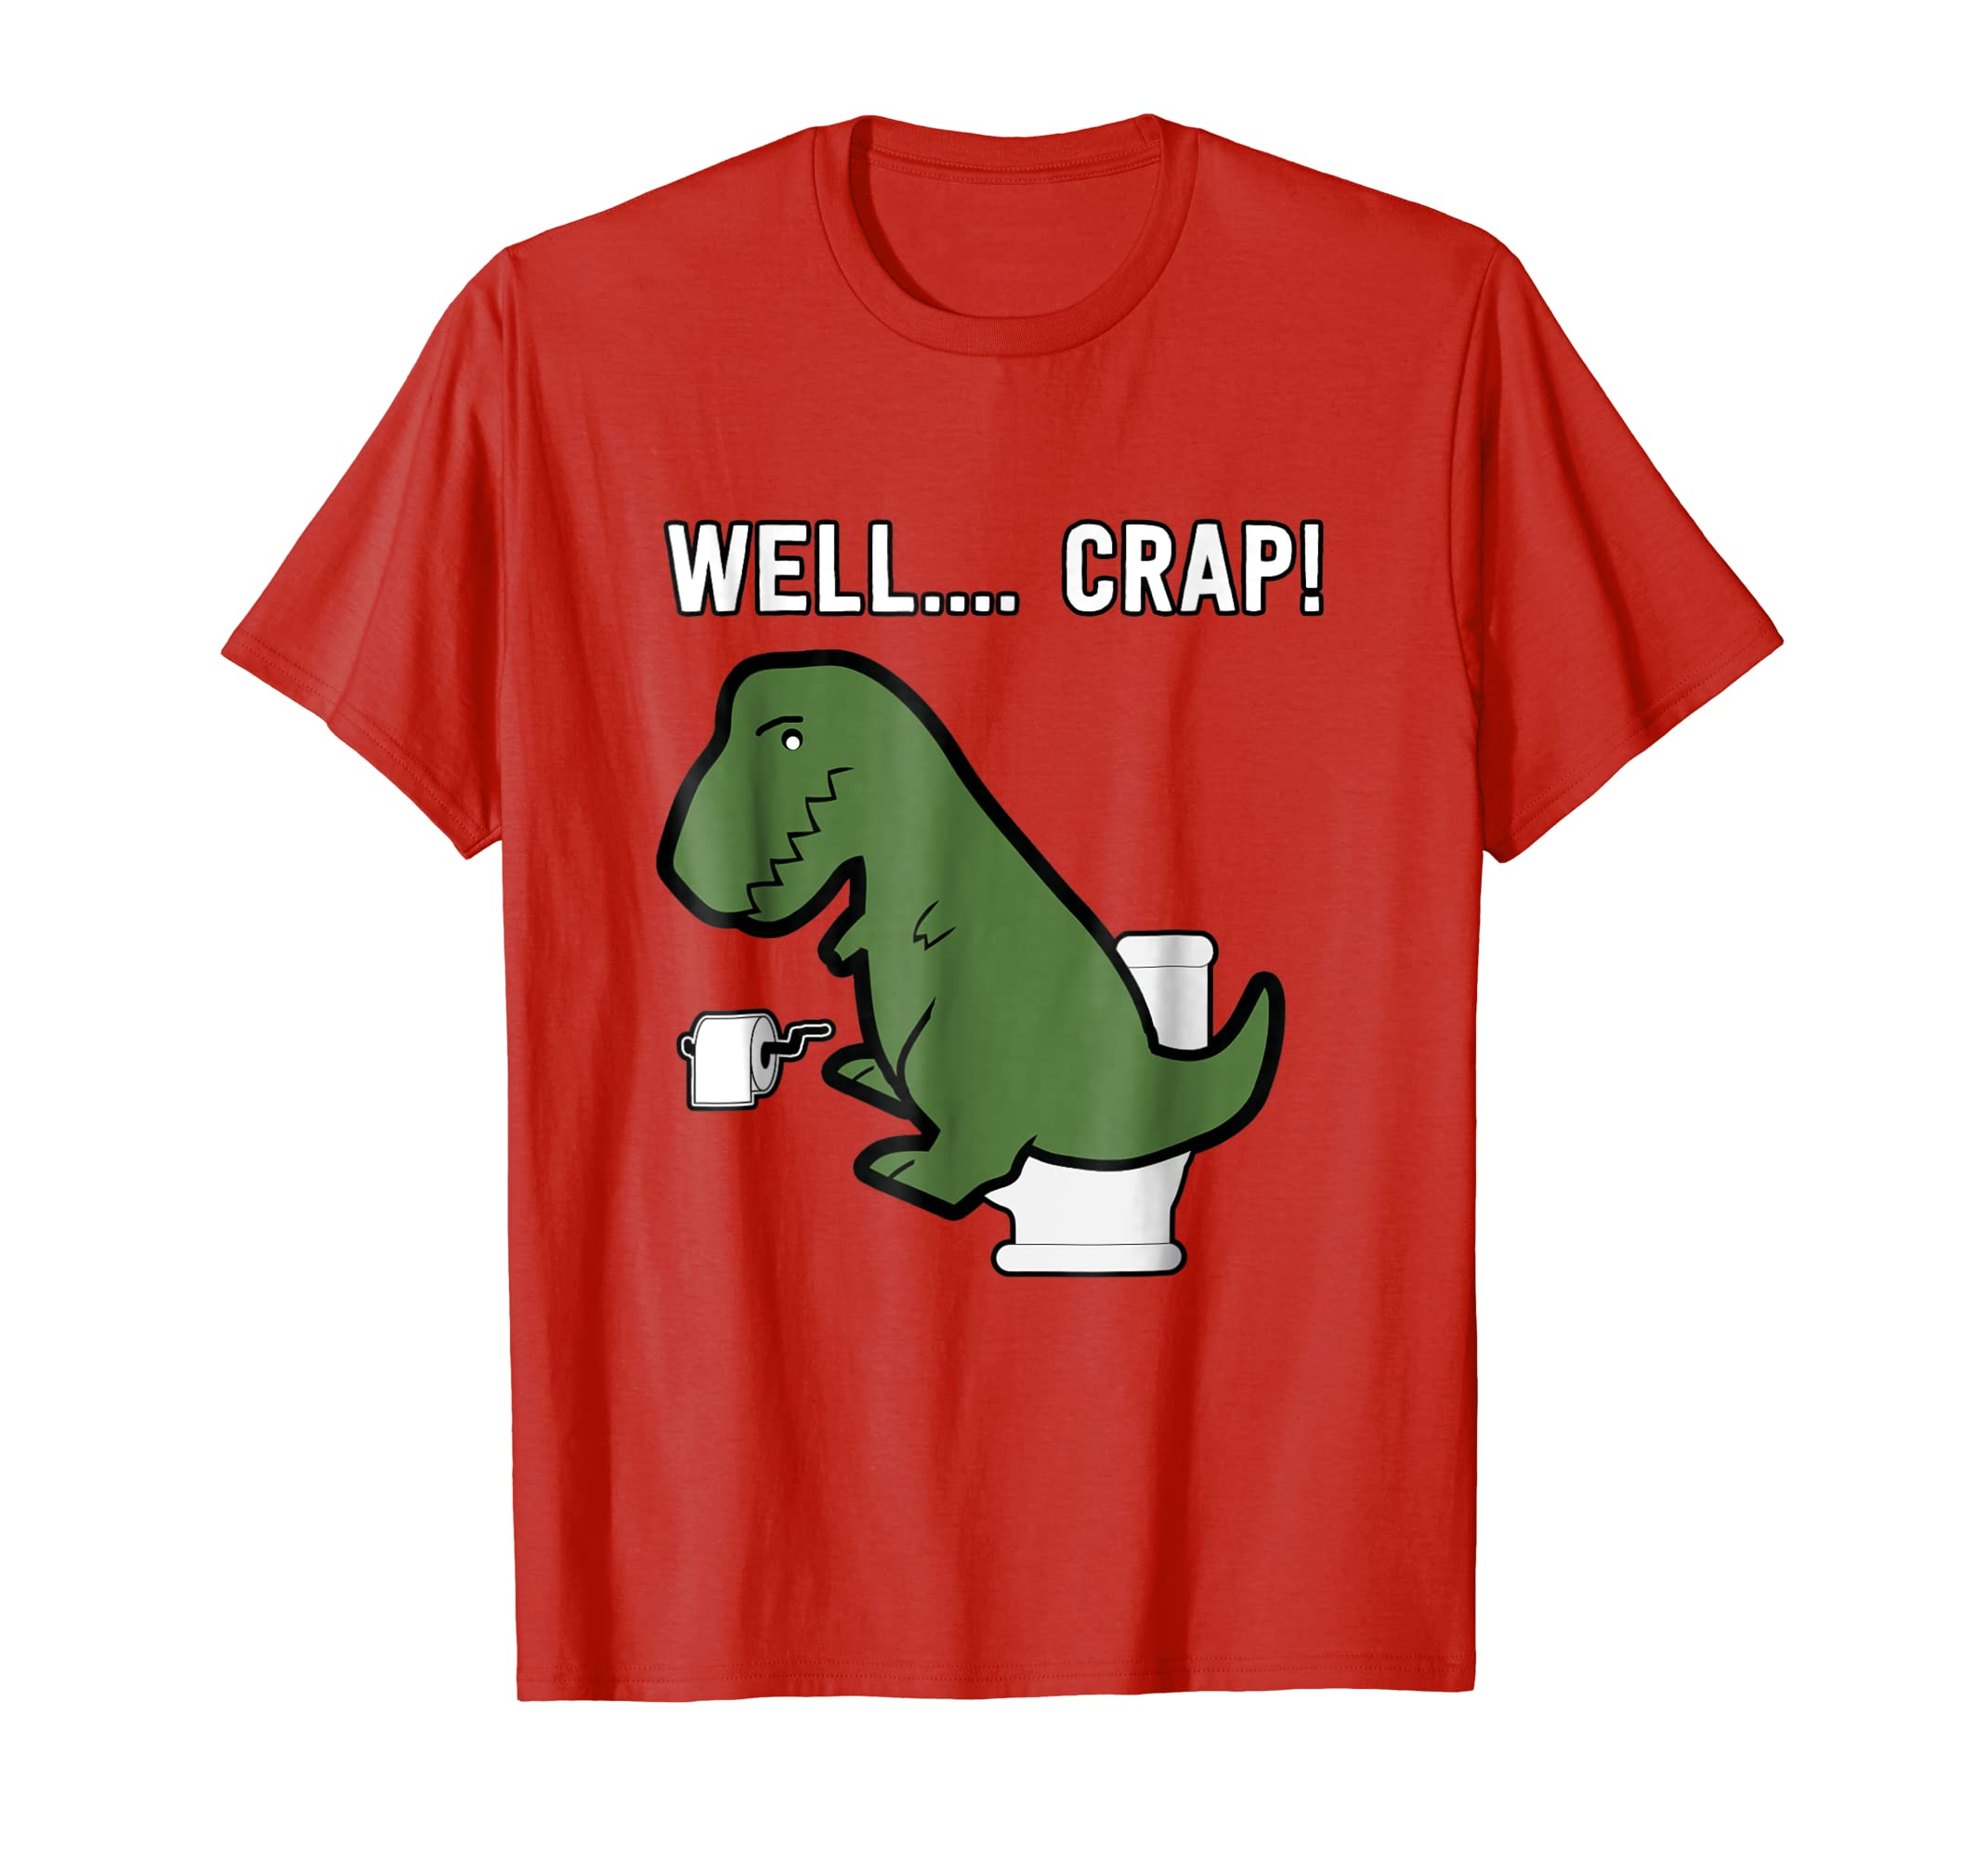 a8de34b22 Amazon.com: Well Crap Funny T Rex Shirt I Dinosaur TShirt I Trex Arms:  Clothing